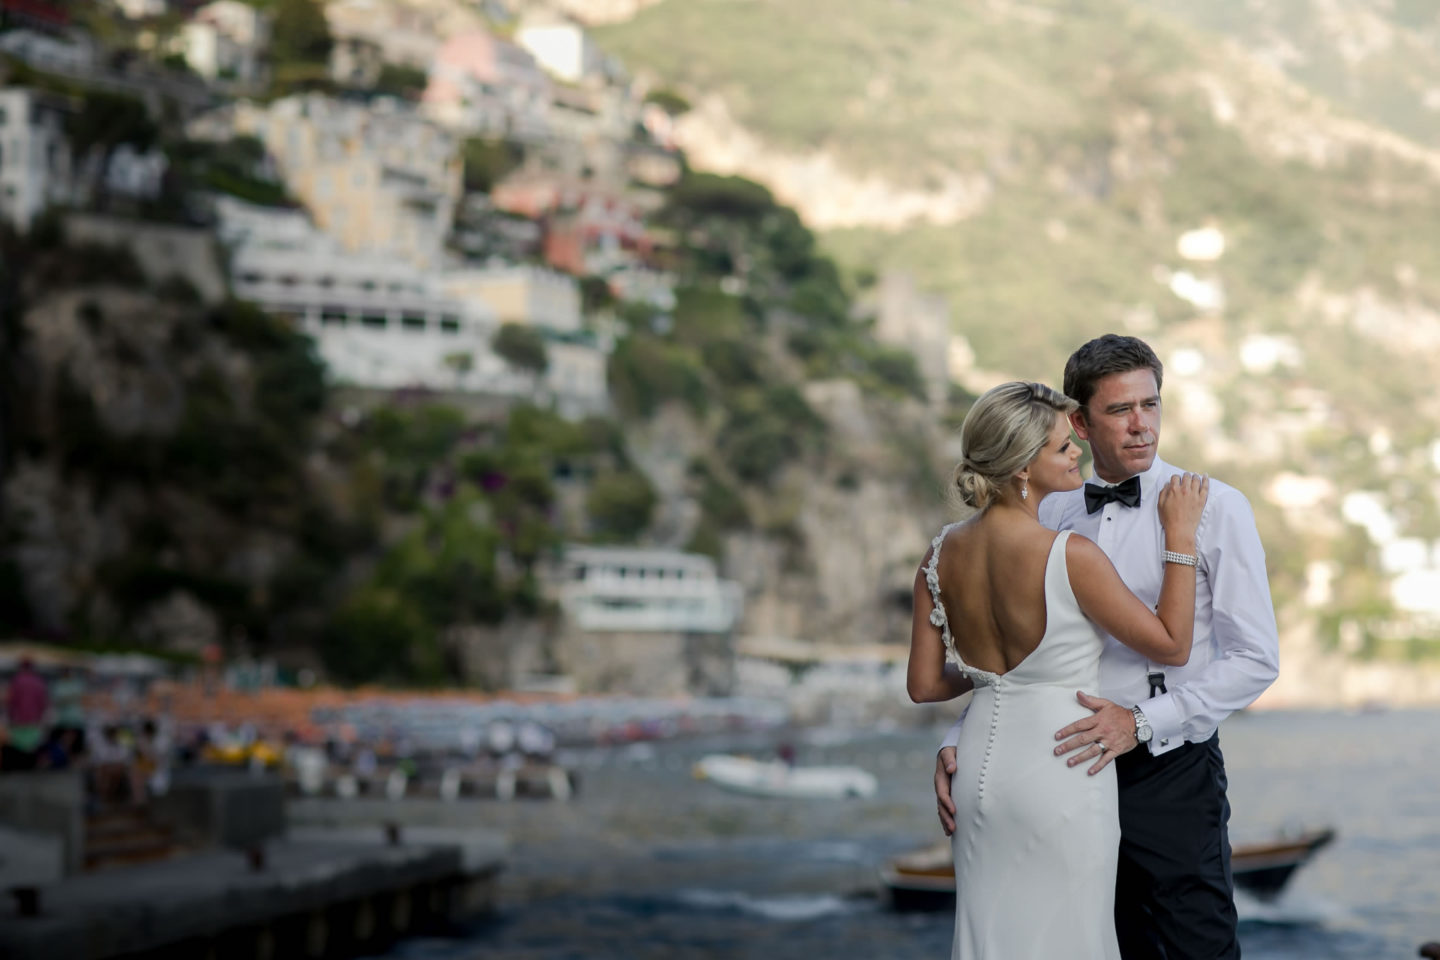 Hill :: Wedding in Positano. Sea and love :: Luxury wedding photography - 45 :: Hill